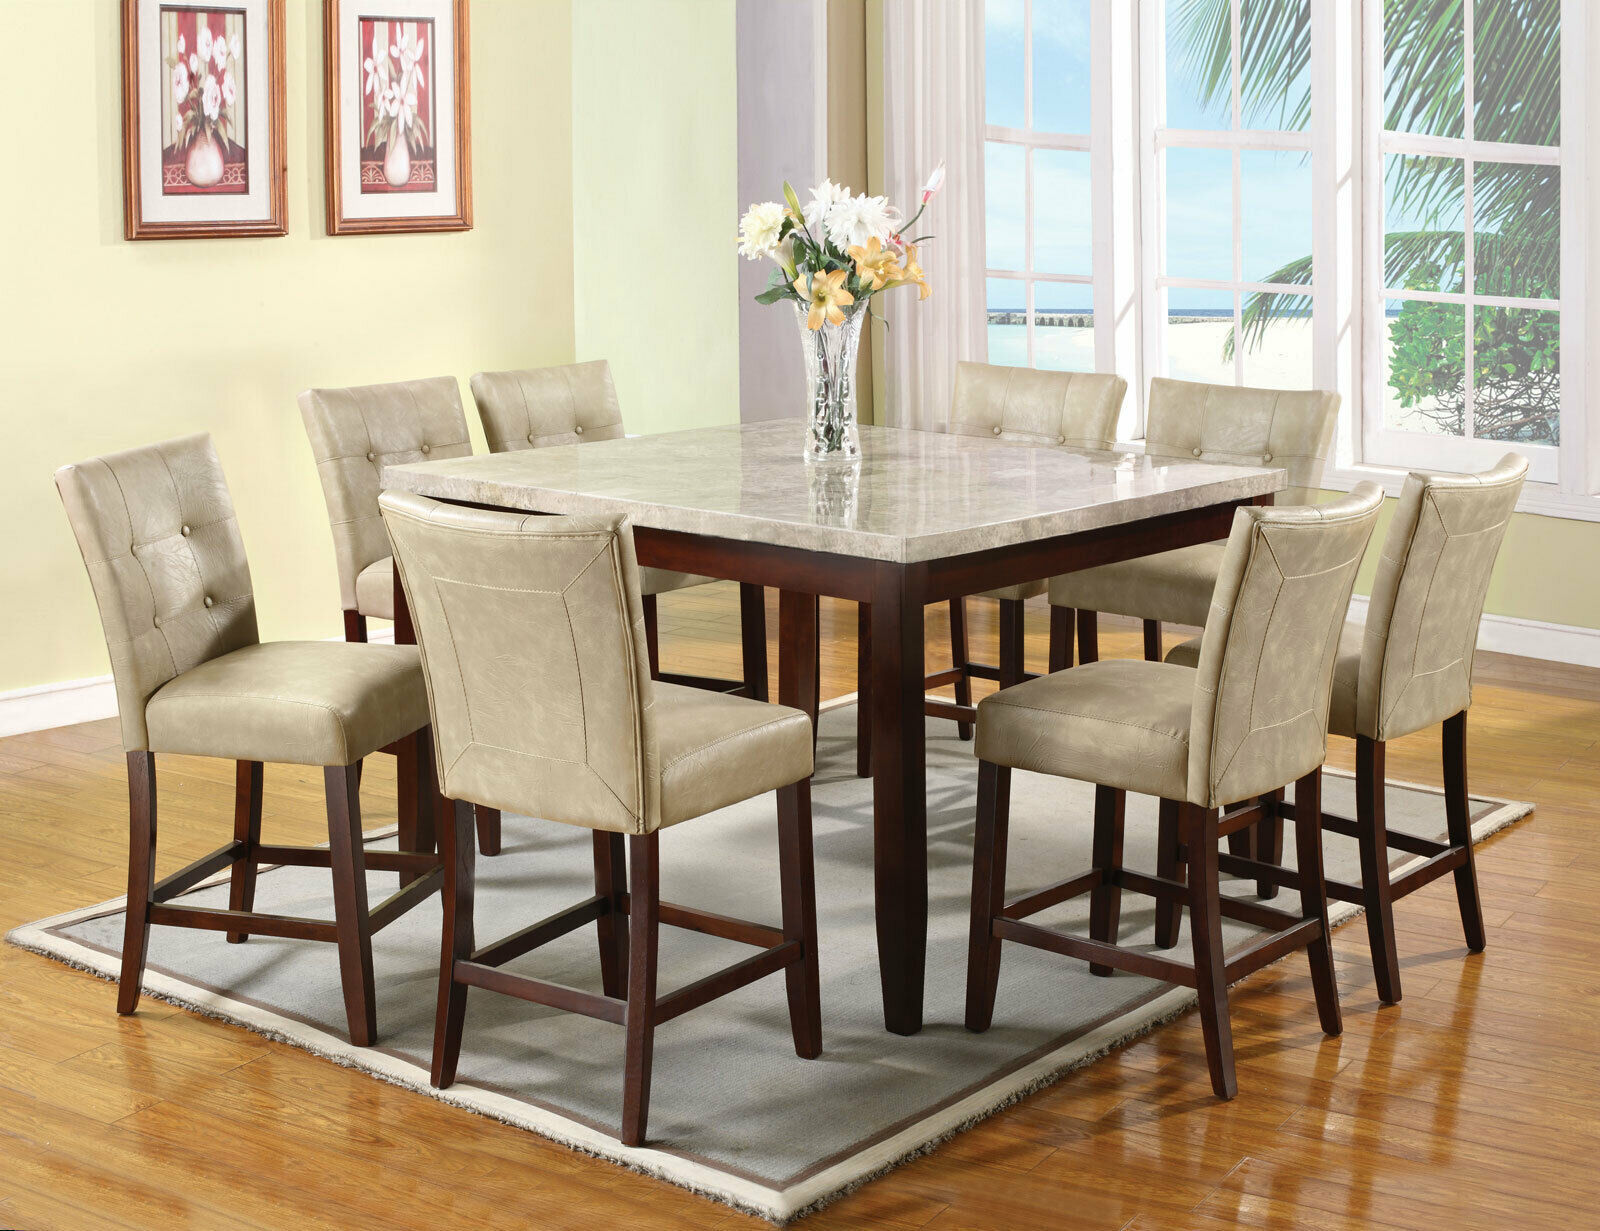 Modern Dining Room Set 9pcs Beige Counter Height Marble